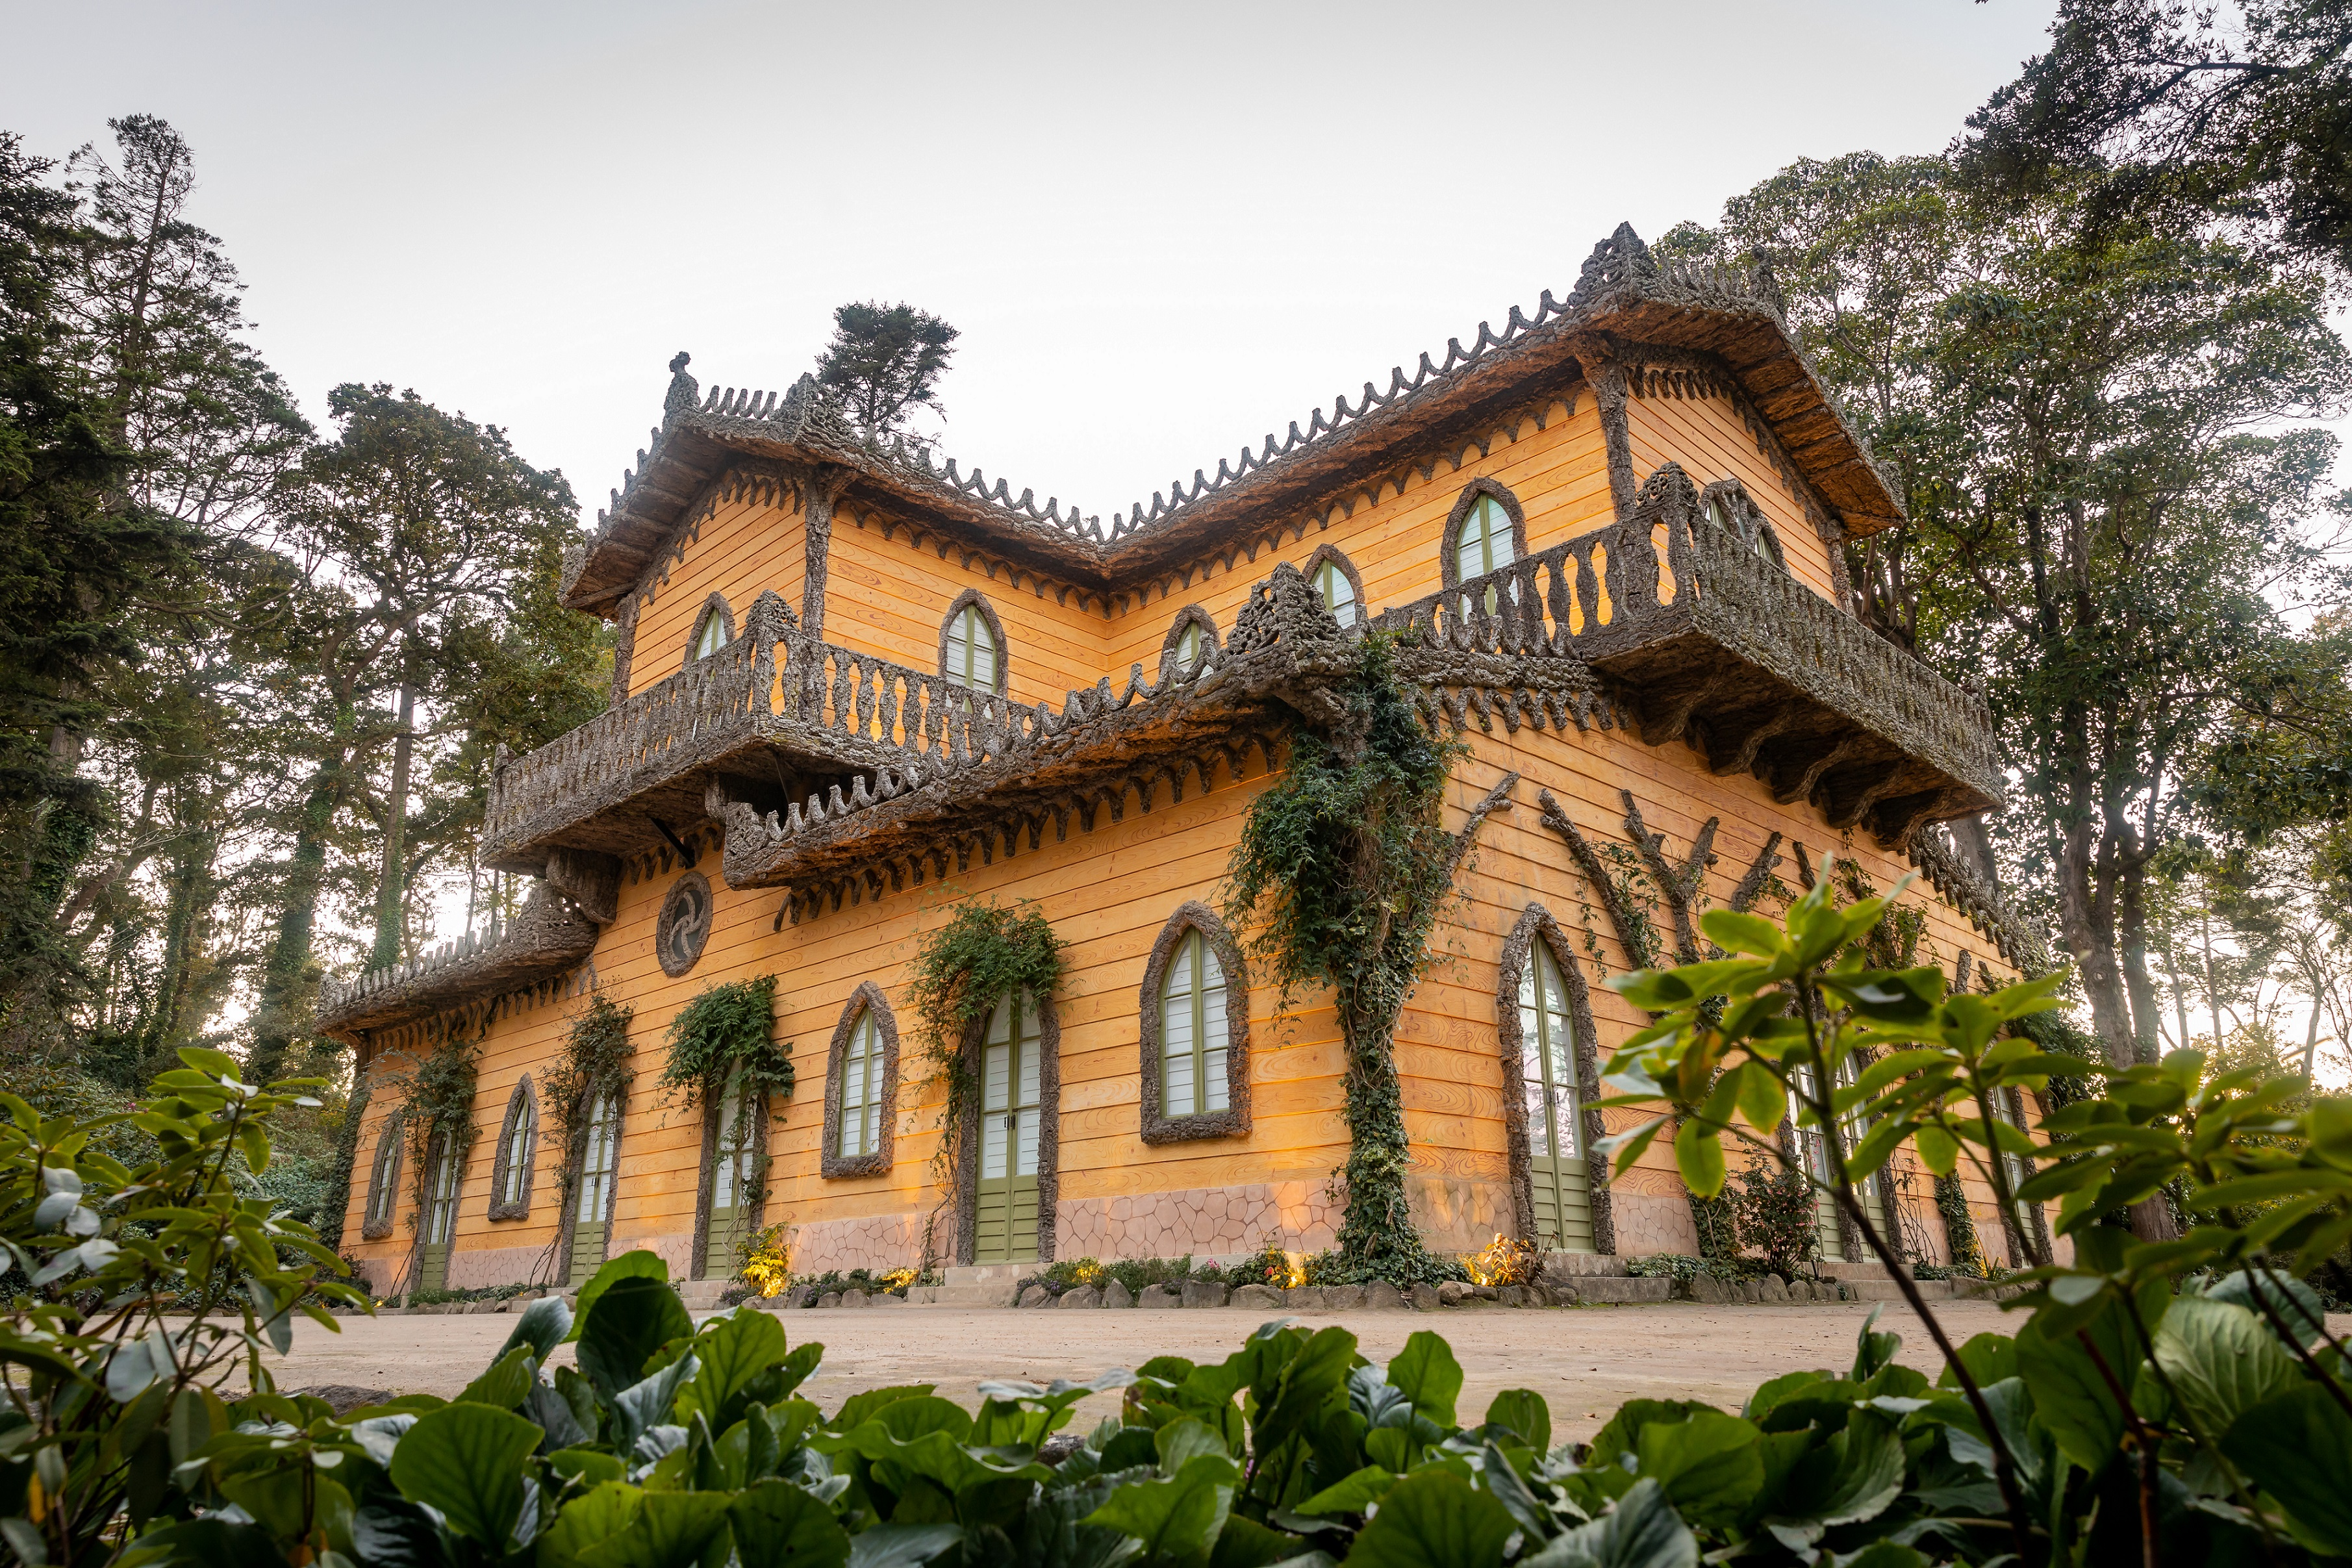 10 Chalet_of_the_Countess_of_Edla_credits_PSML_Luis_Duarte